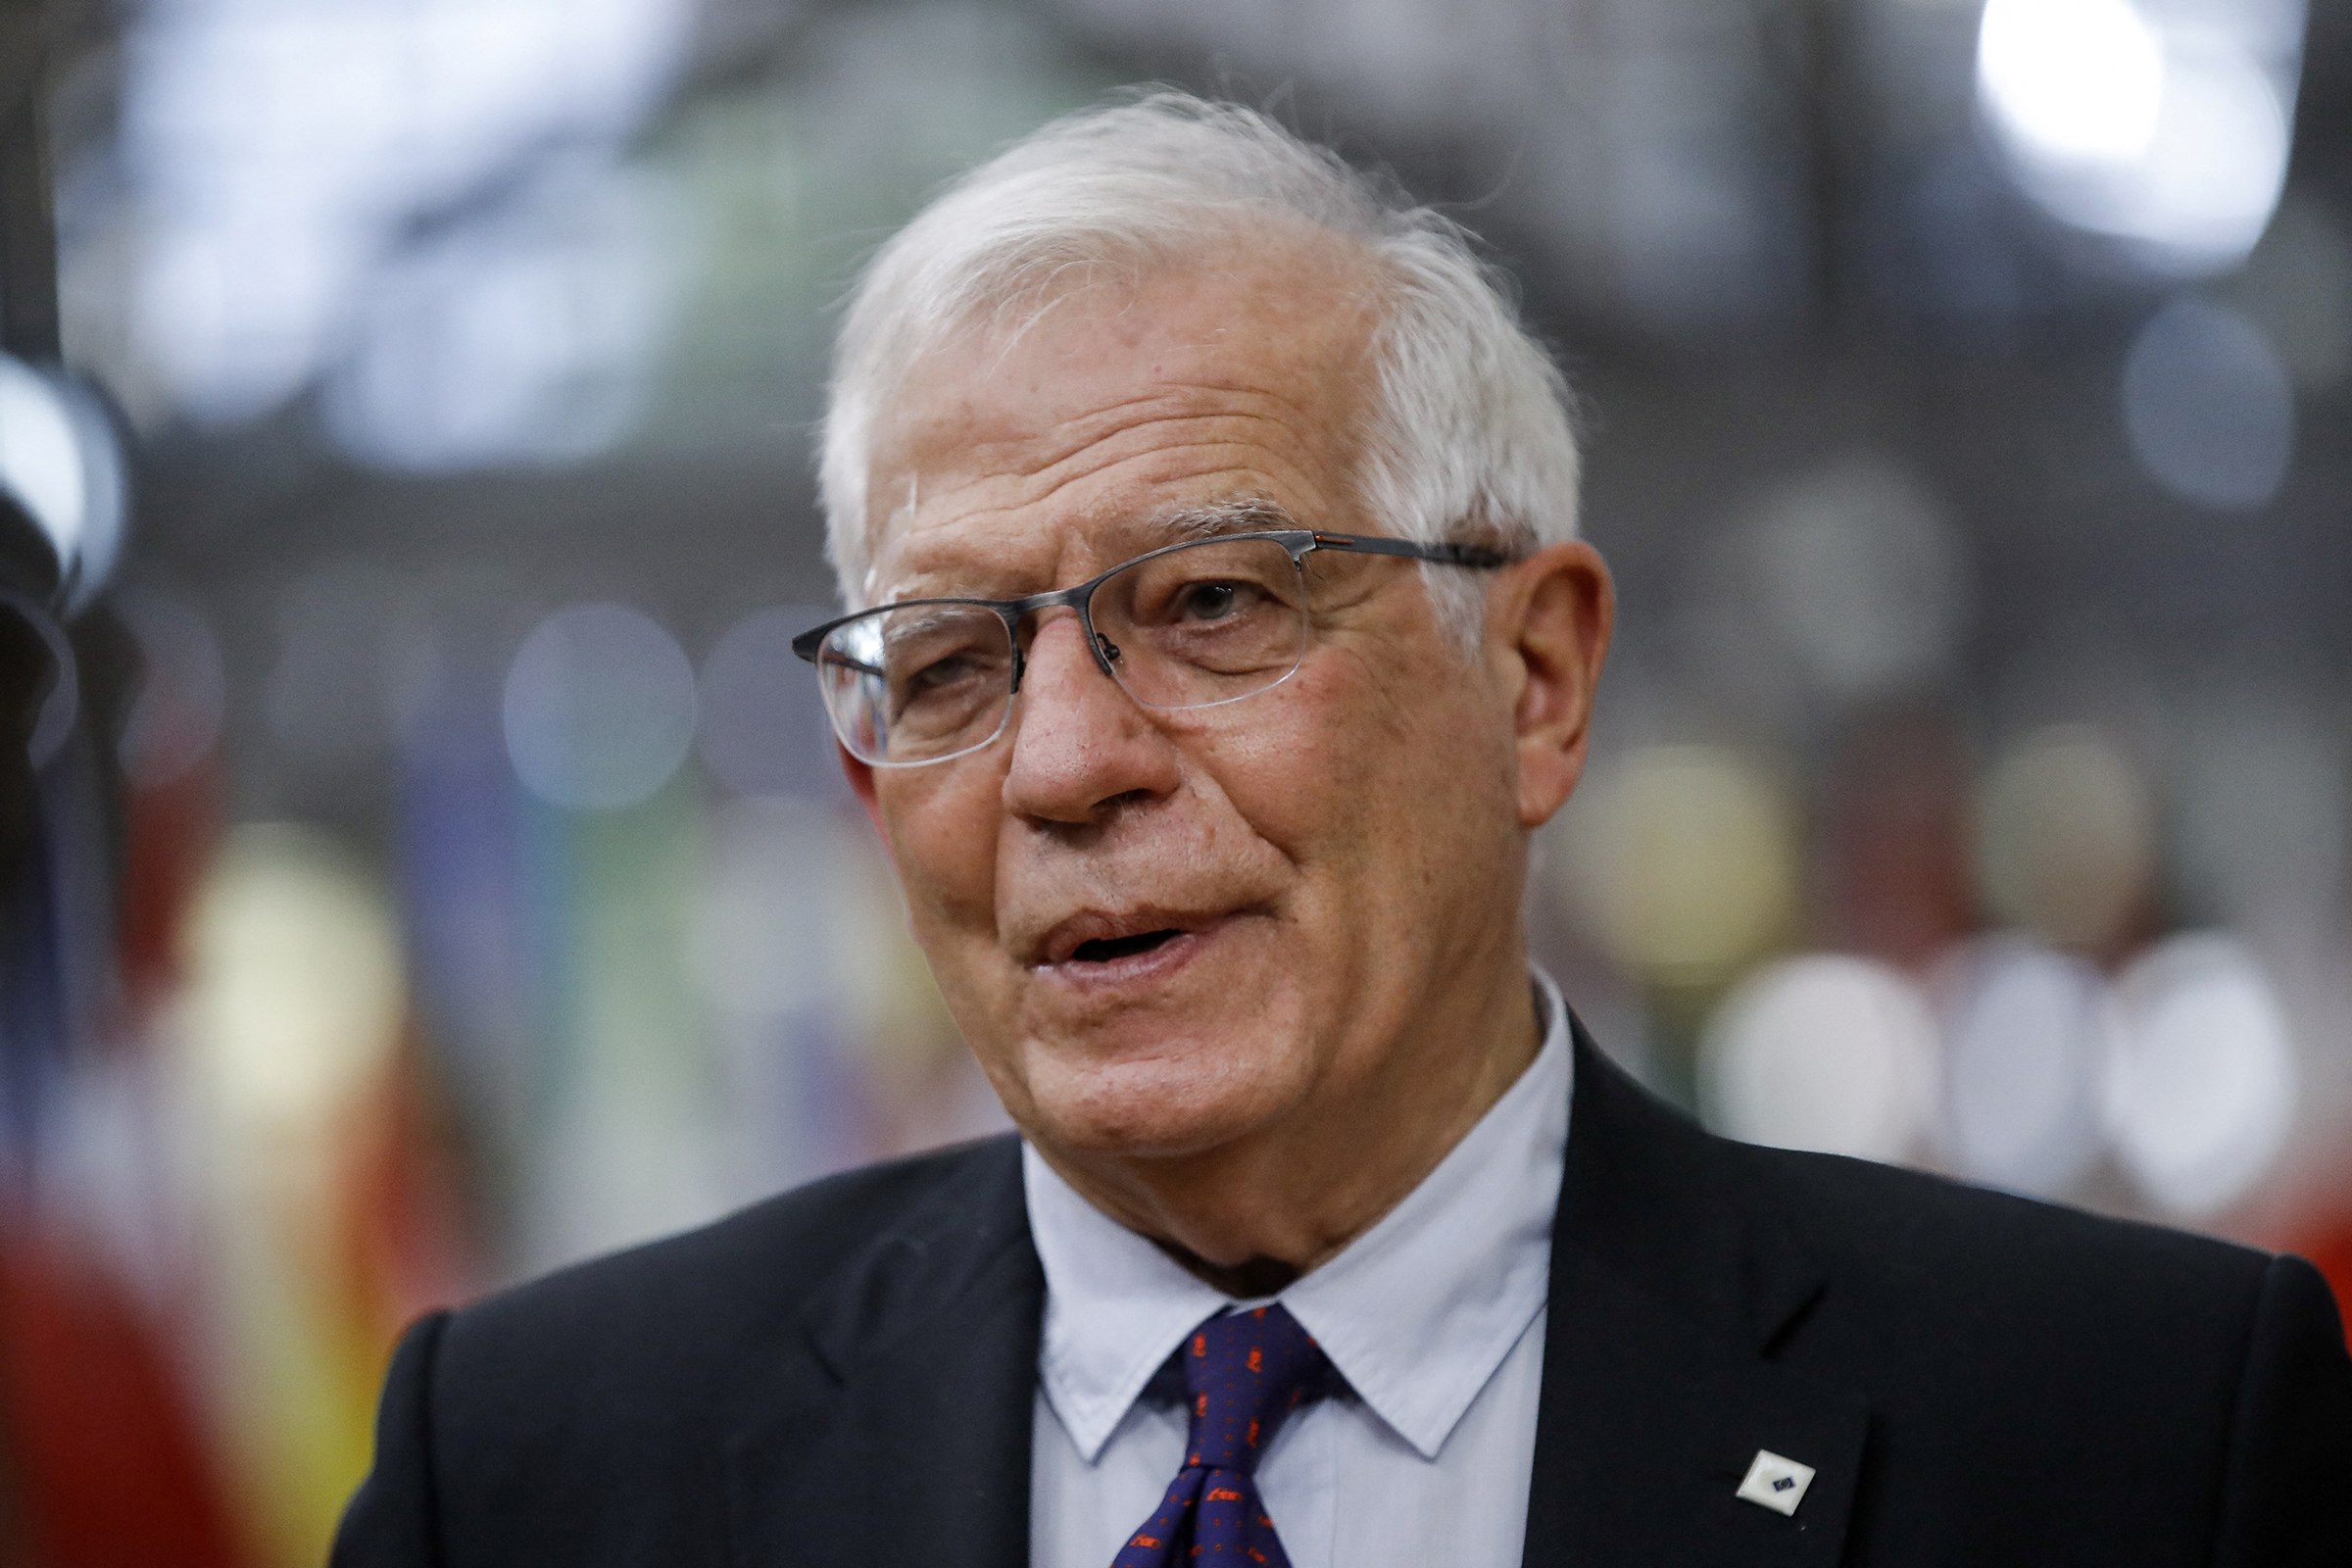 Josep Borrell arrives for an EU summit in Brussels, on May 24.